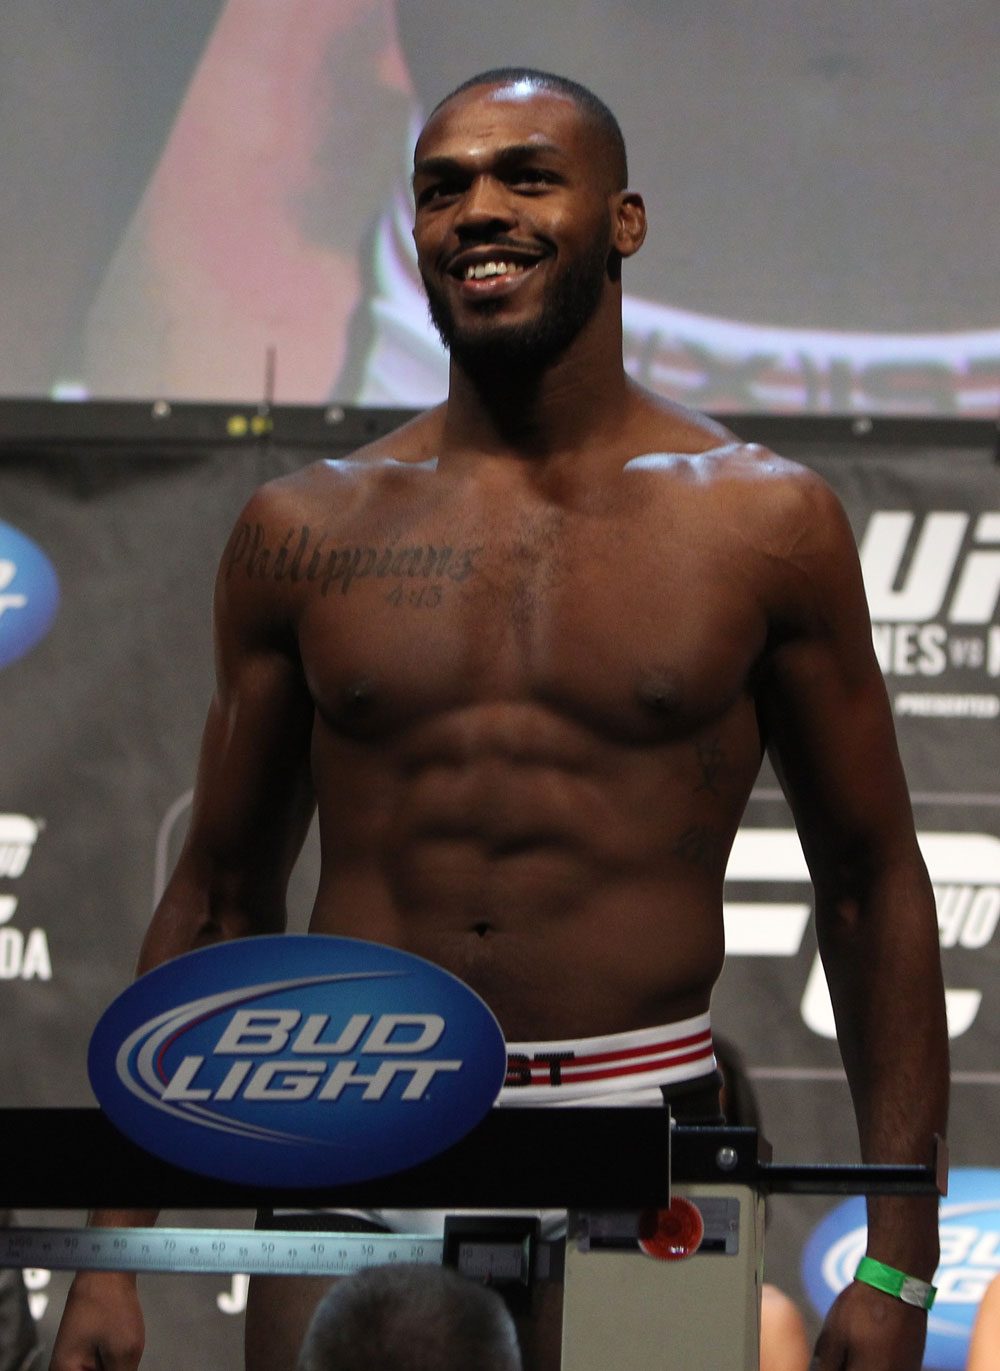 TORONTO, ON - DECEMBER 09:  UFC Light Heavyweight Champion Jon &quot;Bones&quot; Jones weighs in during the UFC 140 Official Weigh-in at the Air Canada Centre on December 9, 2011 in Toronto, Canada.  (Photo by Josh Hedges/Zuffa LLC/Zuffa LLC via Getty Images)